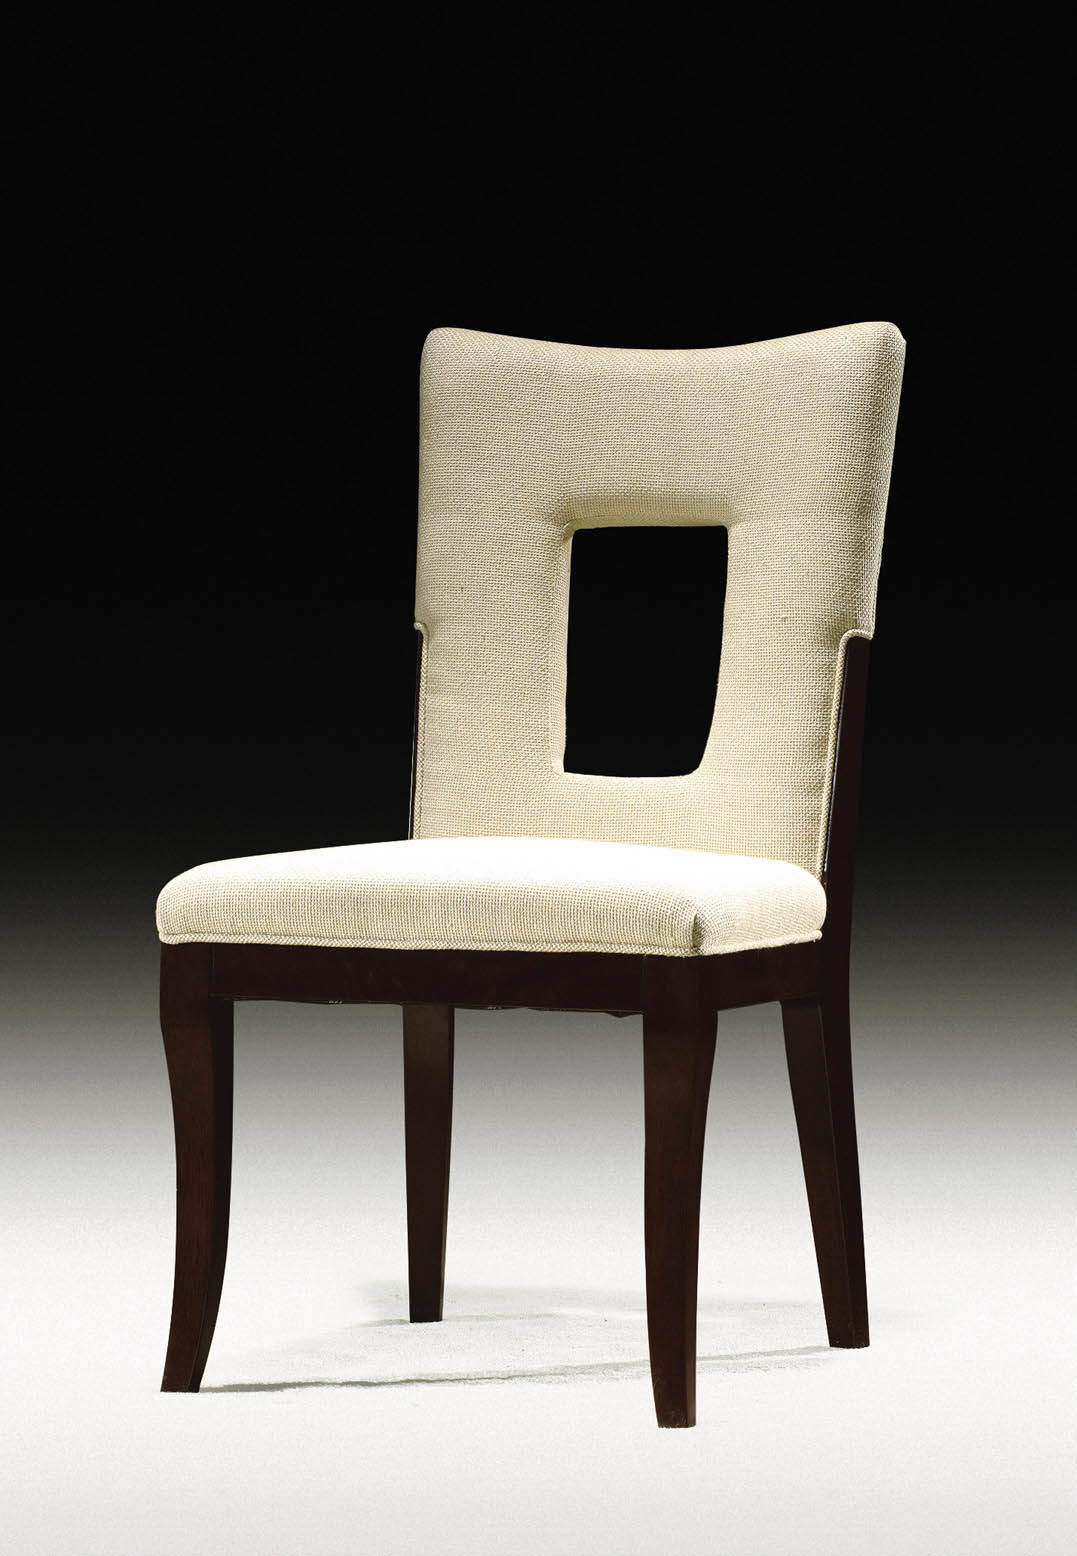 CHAIR CHINA DINING Chair Pads Amp Cushions